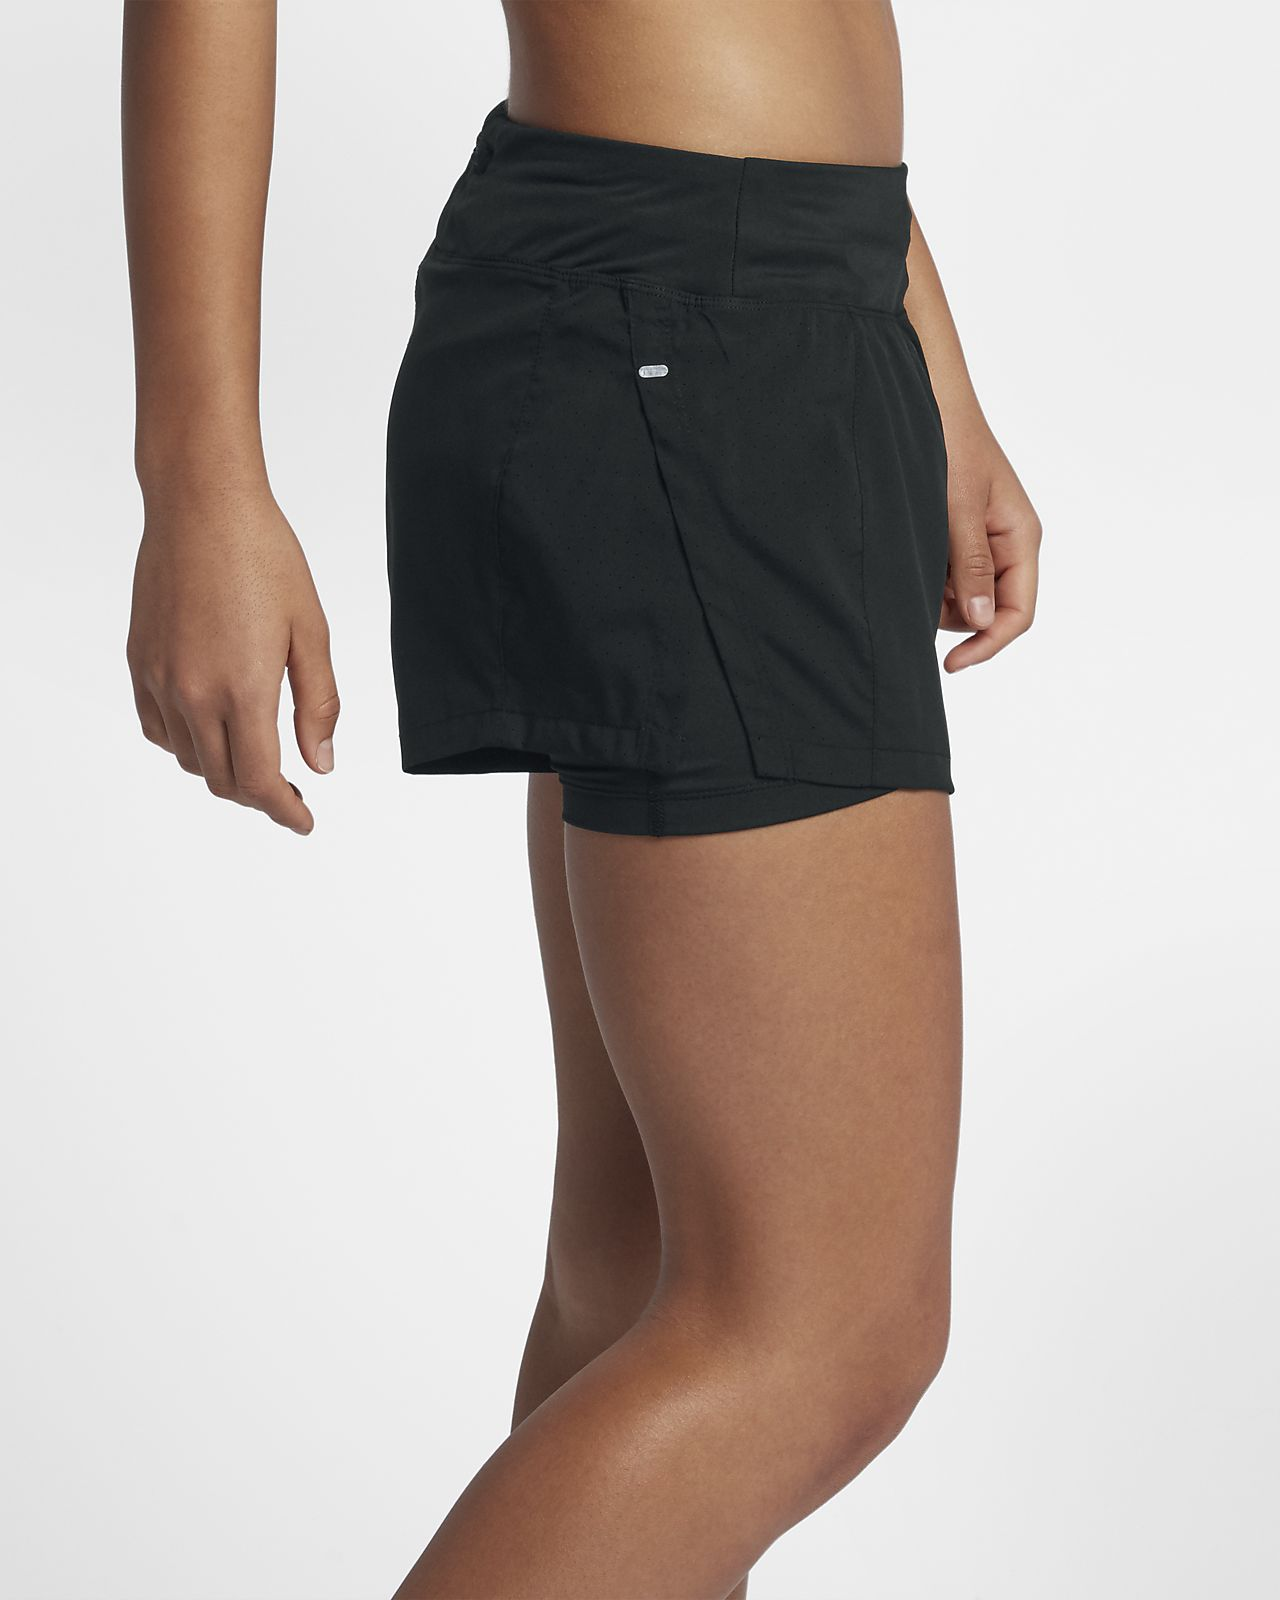 3c846853e38e3 Nike Eclipse Women's 2-in-1 Running Shorts. Nike.com IL